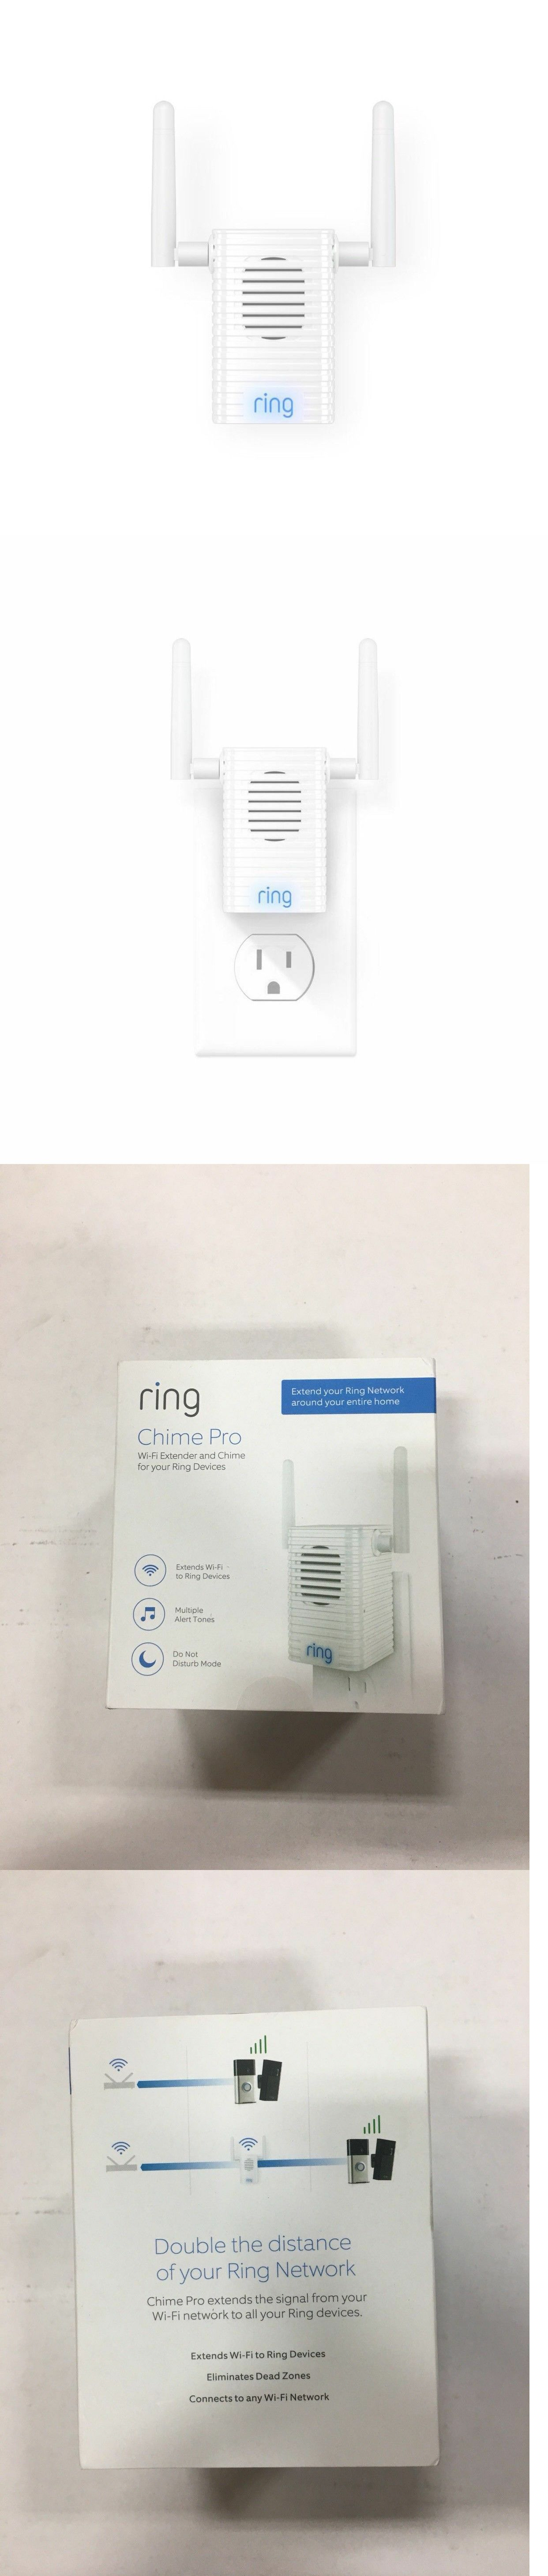 Doorbells 115975 Ring Chime Pro Wi Fi Extender And Indoor Chime For Ring Devices Brand New Buy It Now Only 42 On Ebay Doorbells Chimes Doorbell Ebay